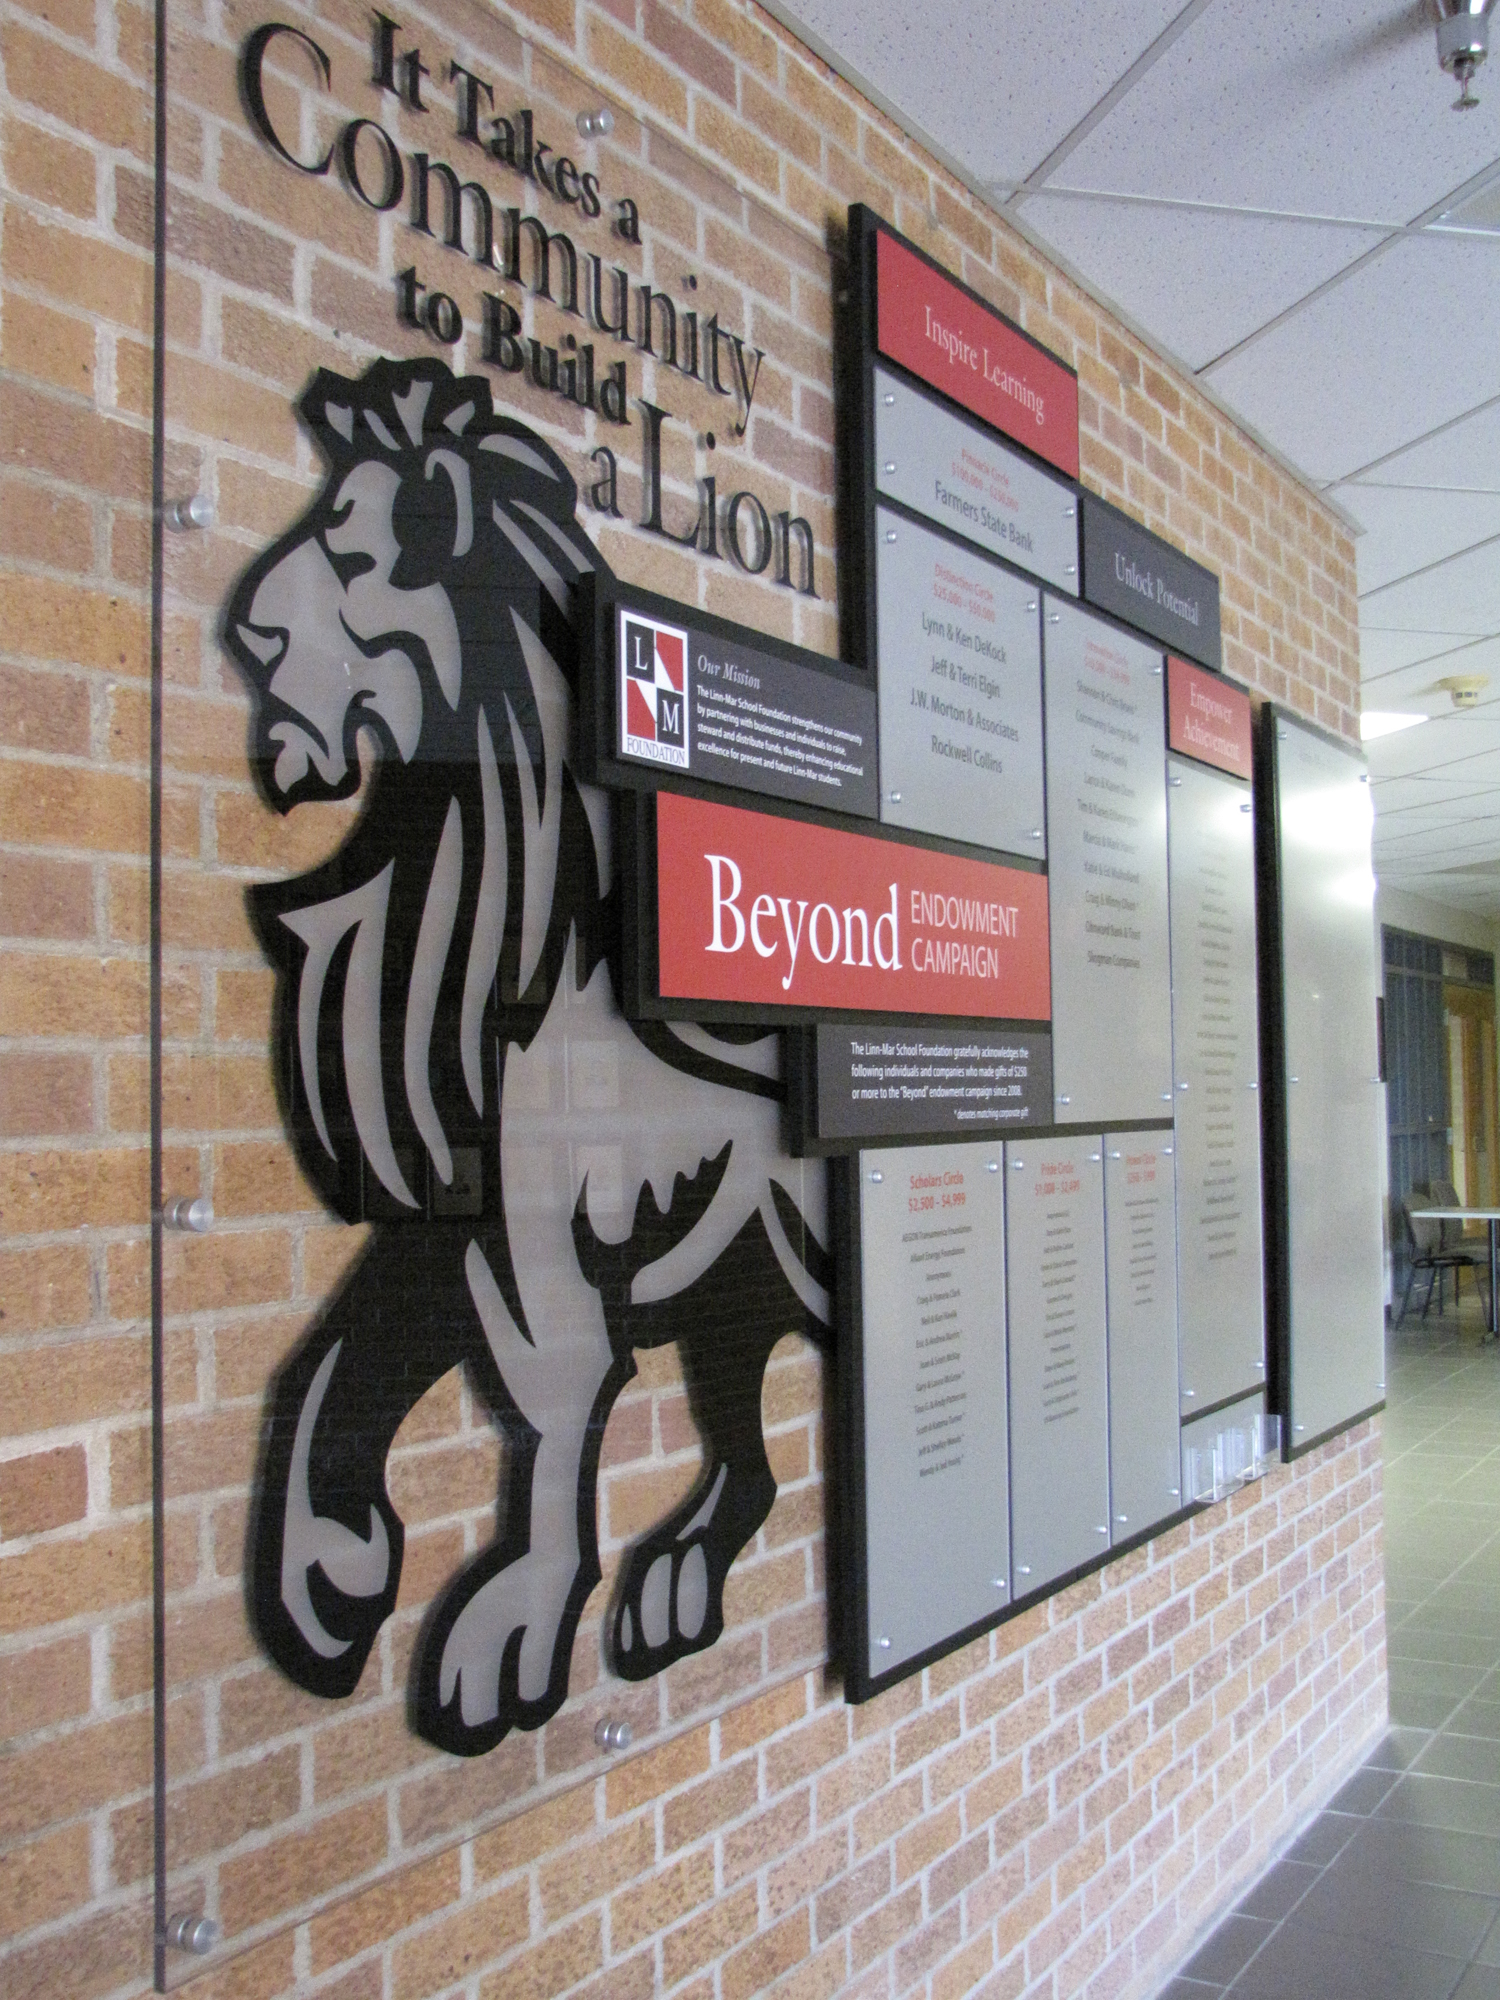 School Foundation Donor Wall Creates Community Pride